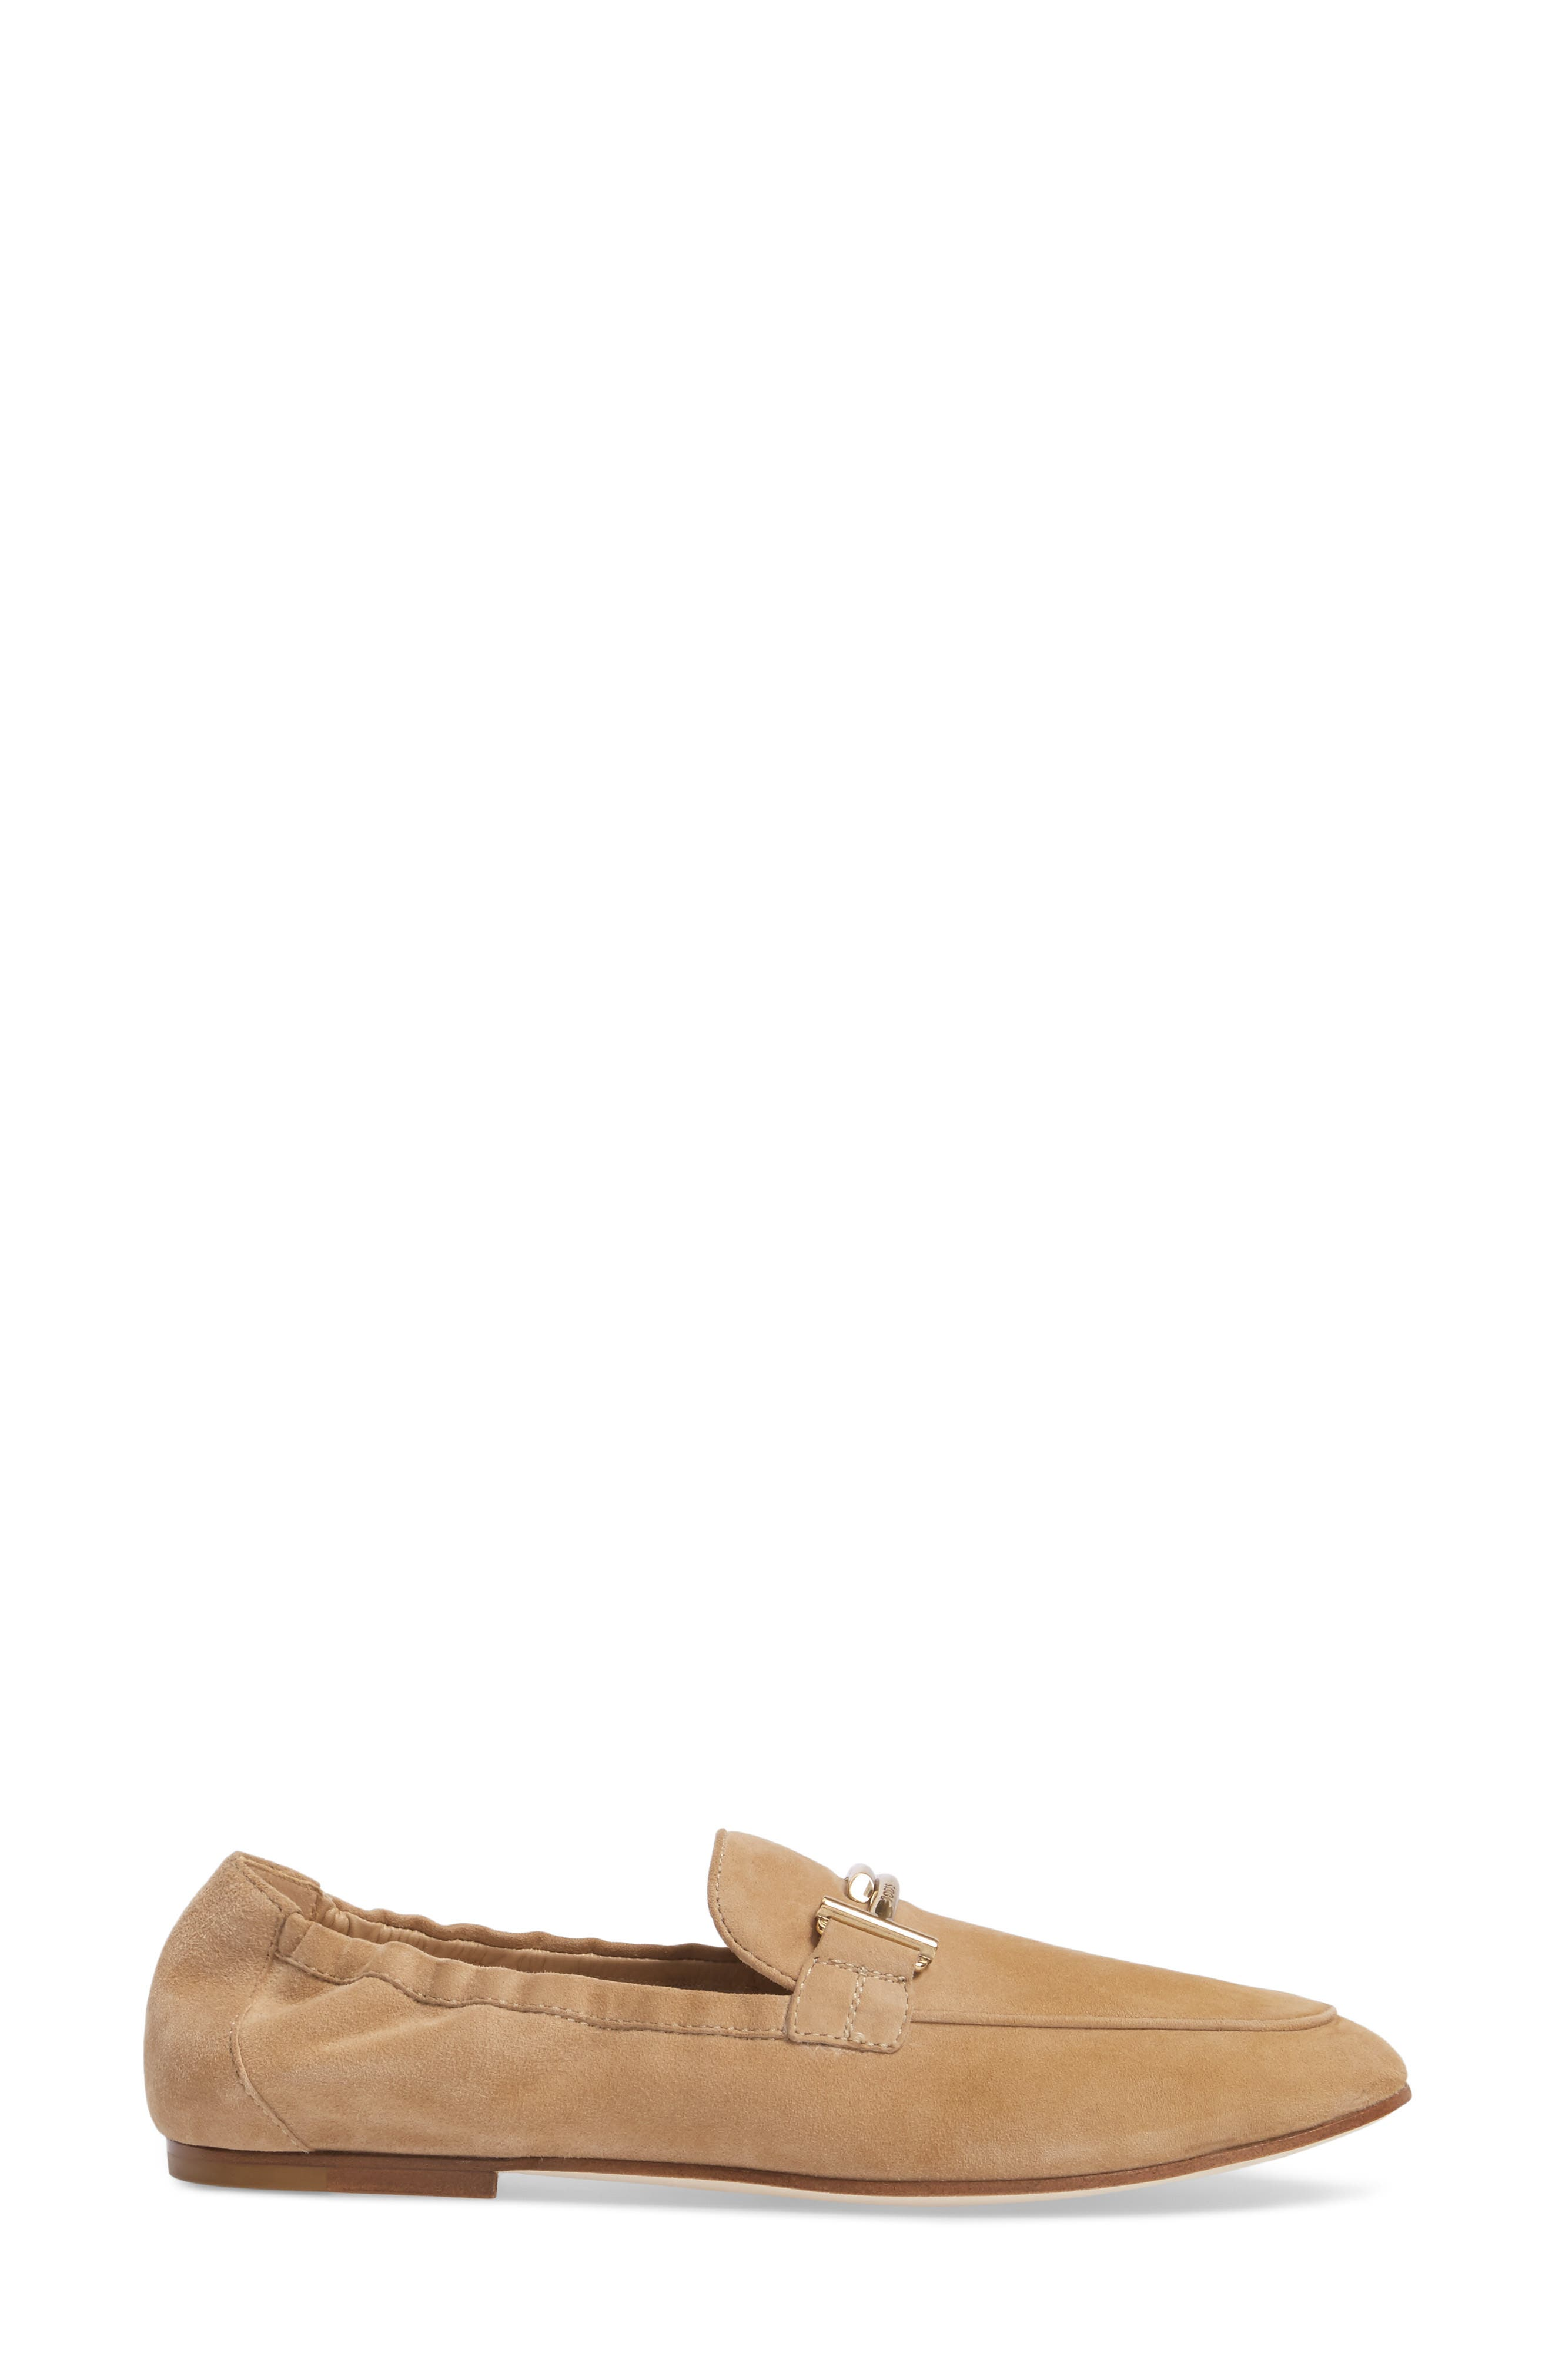 Double T Scrunch Loafer,                             Alternate thumbnail 10, color,